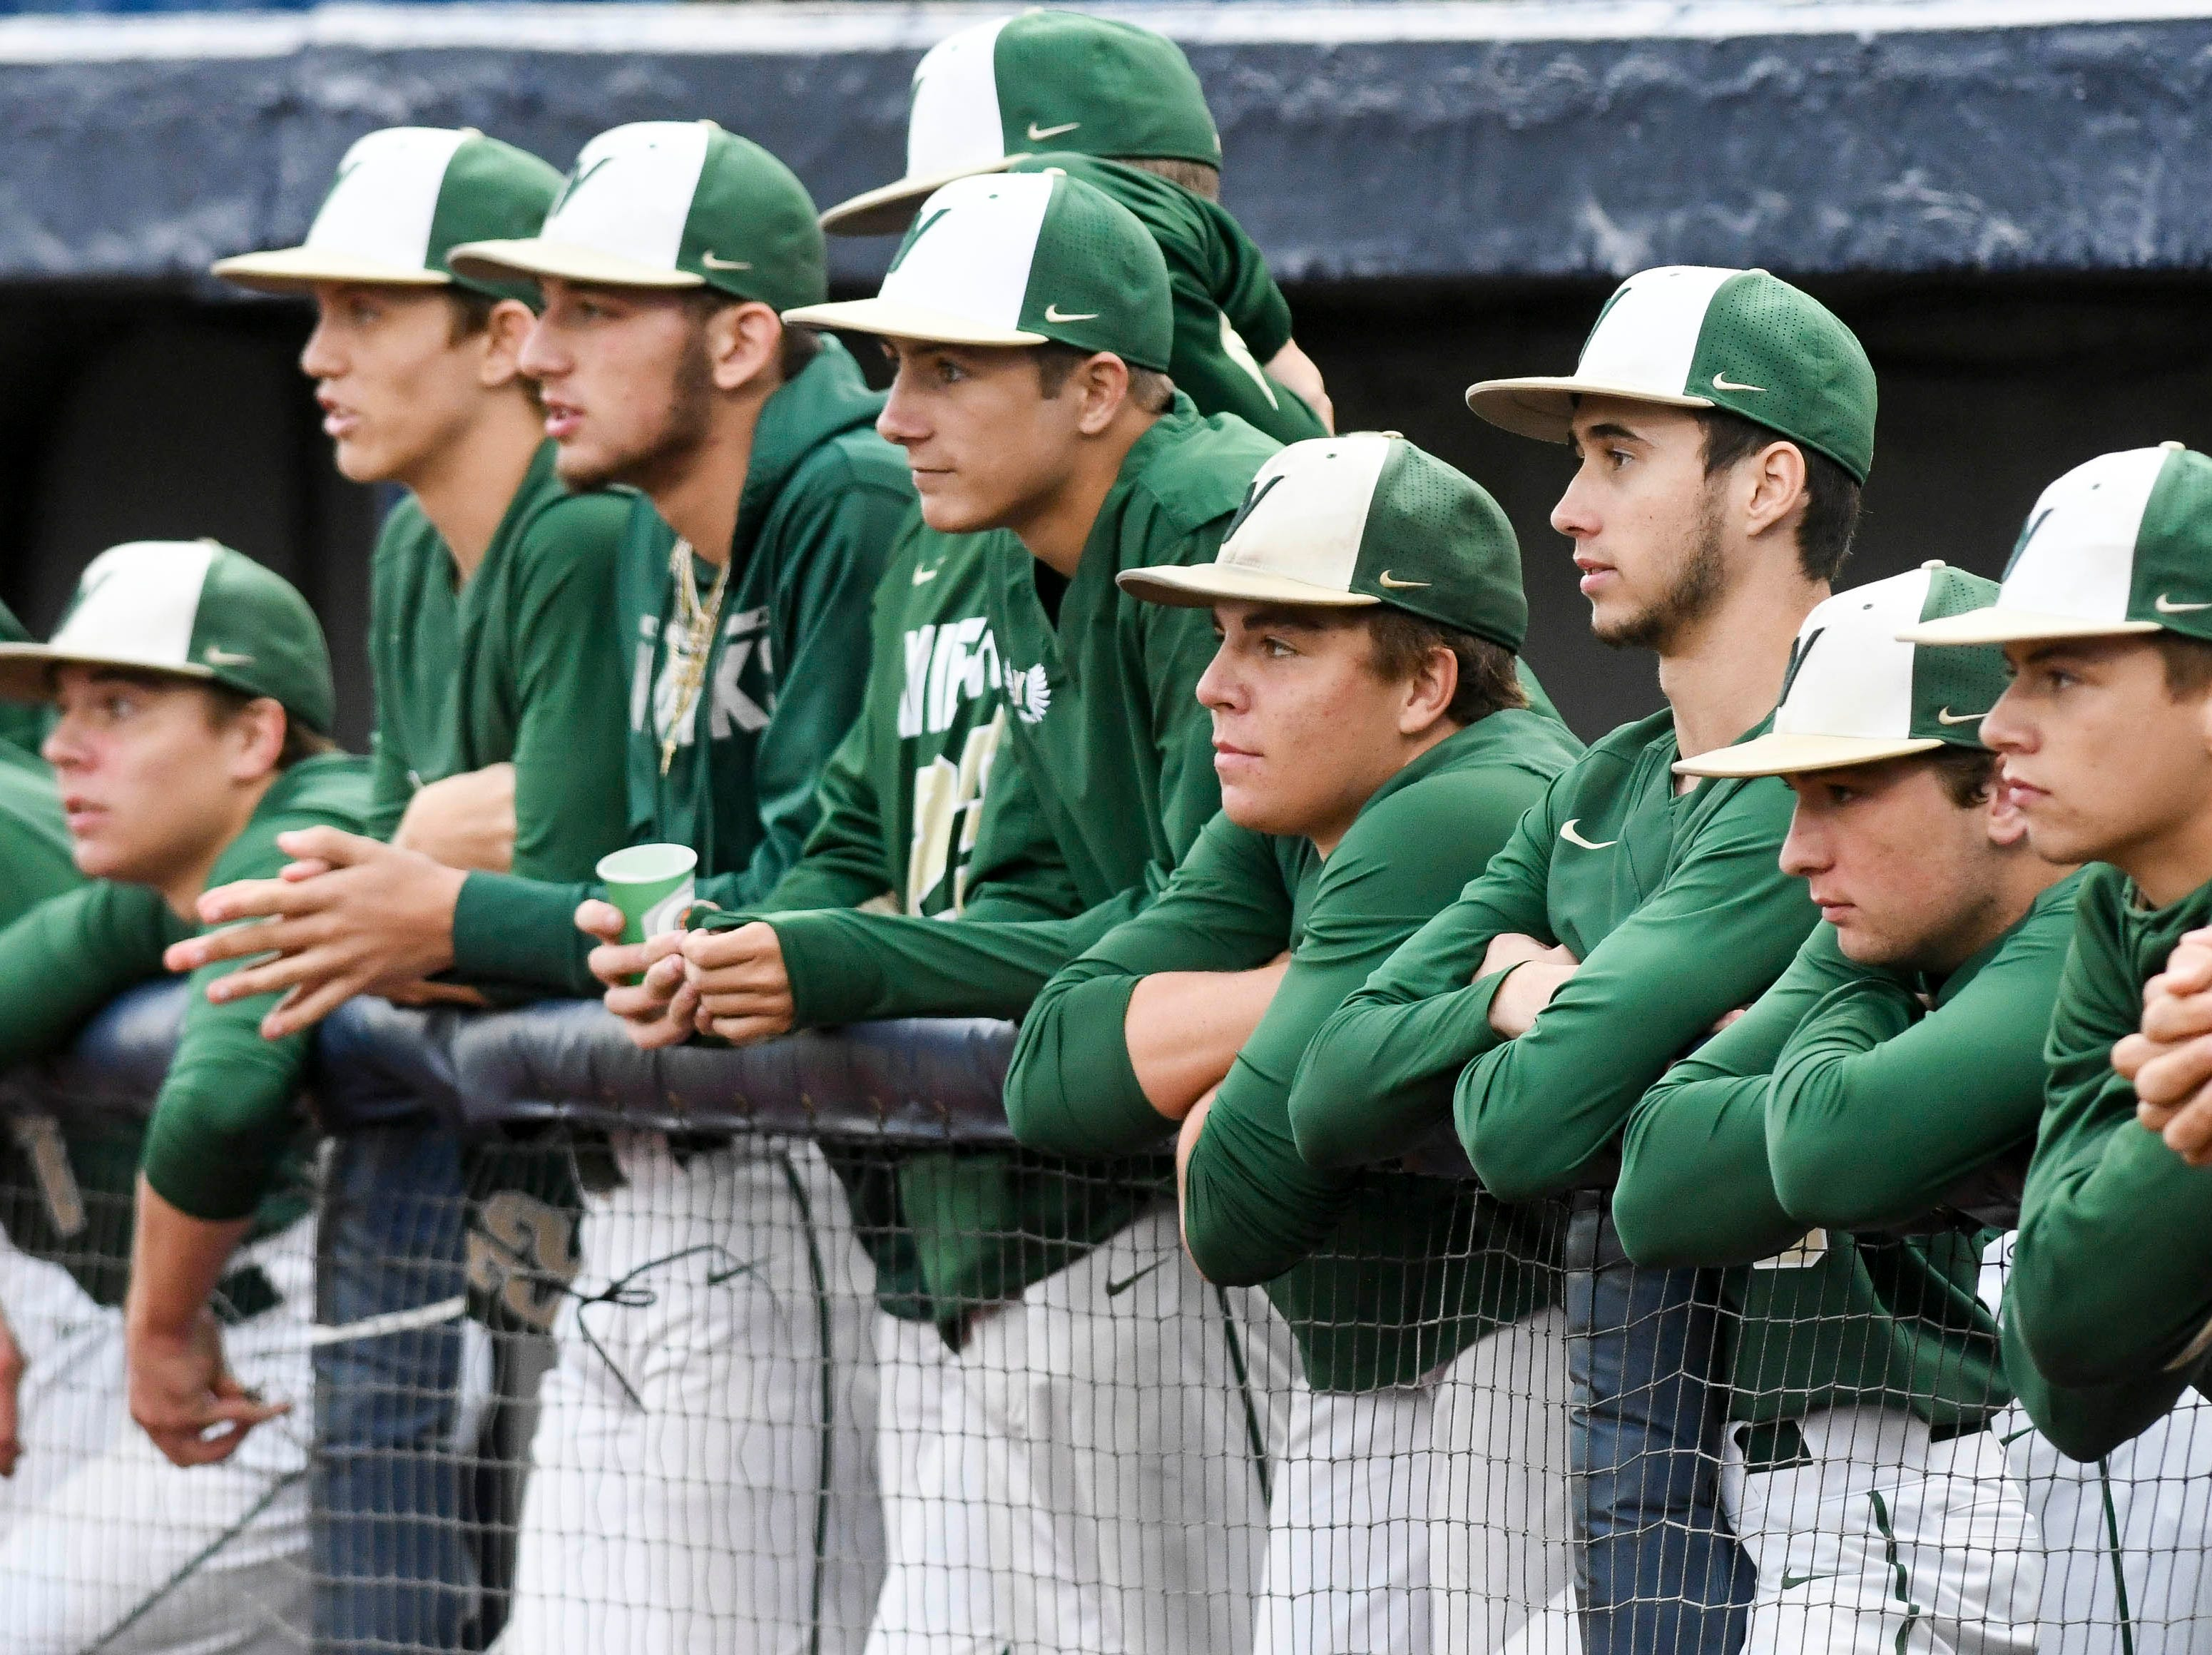 Viera players watch the game action from the bench during Wednesday's game at USSSA Space Coast Stadium.